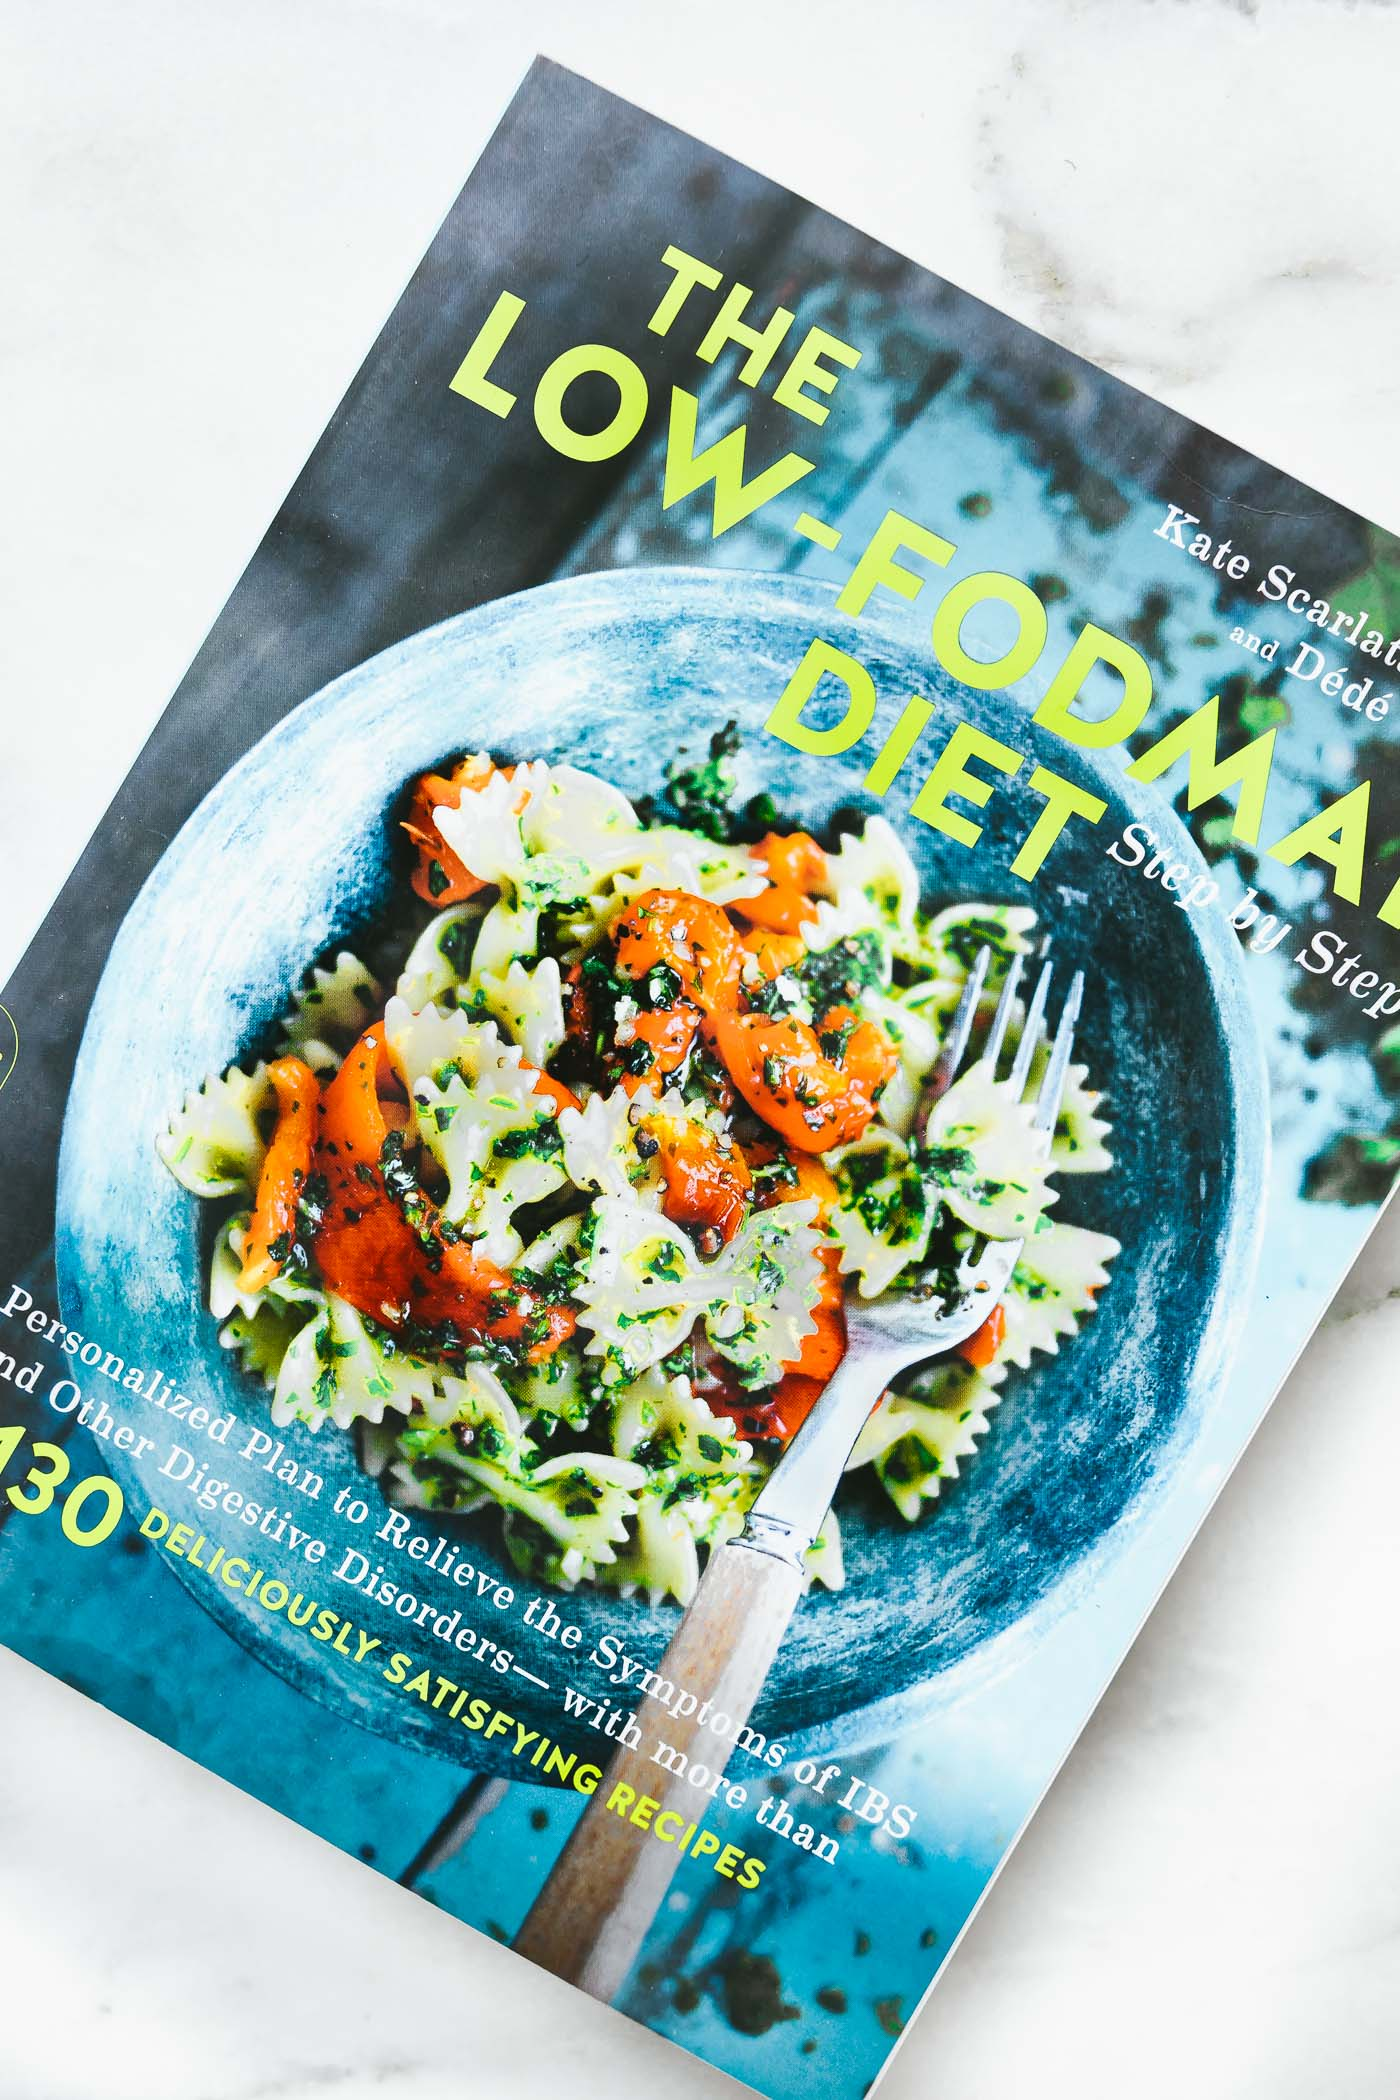 The Low-FODMAP Diet Cookbook cover